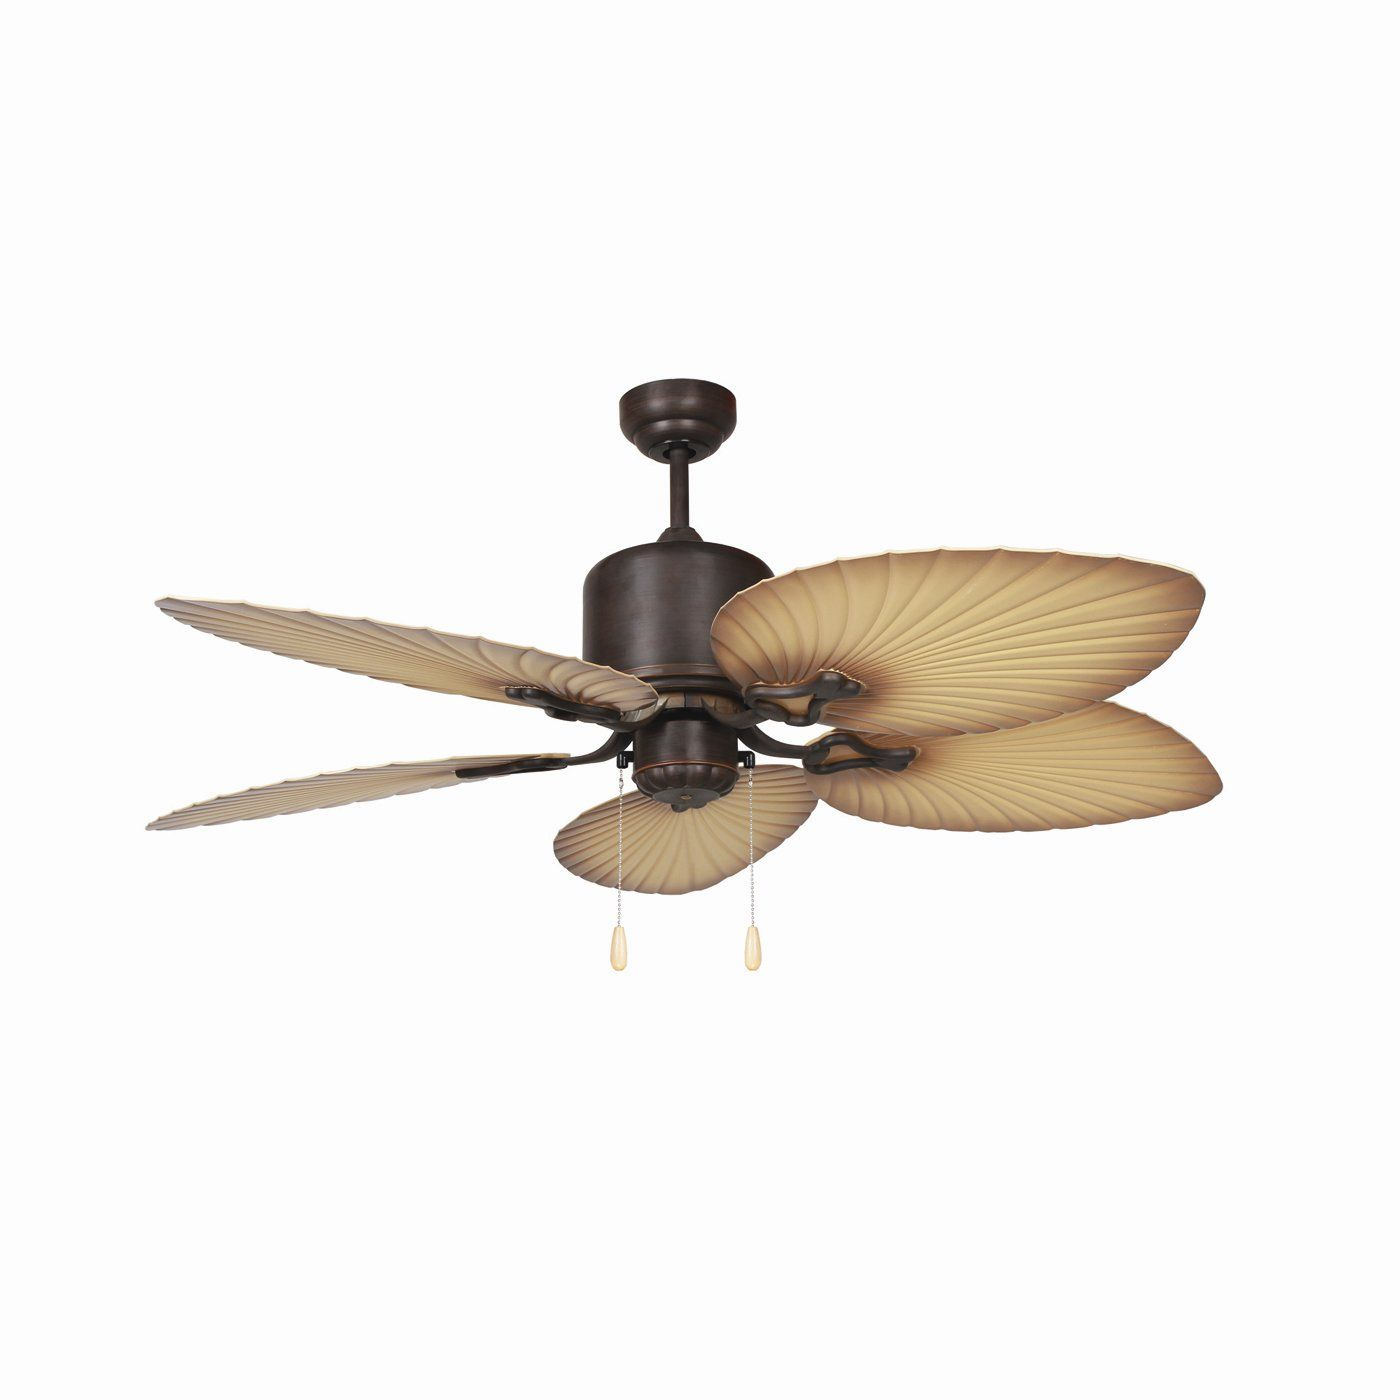 Yosemite Home Decor California Breeze2 Nlk 52 Inch Ceiling Fan With